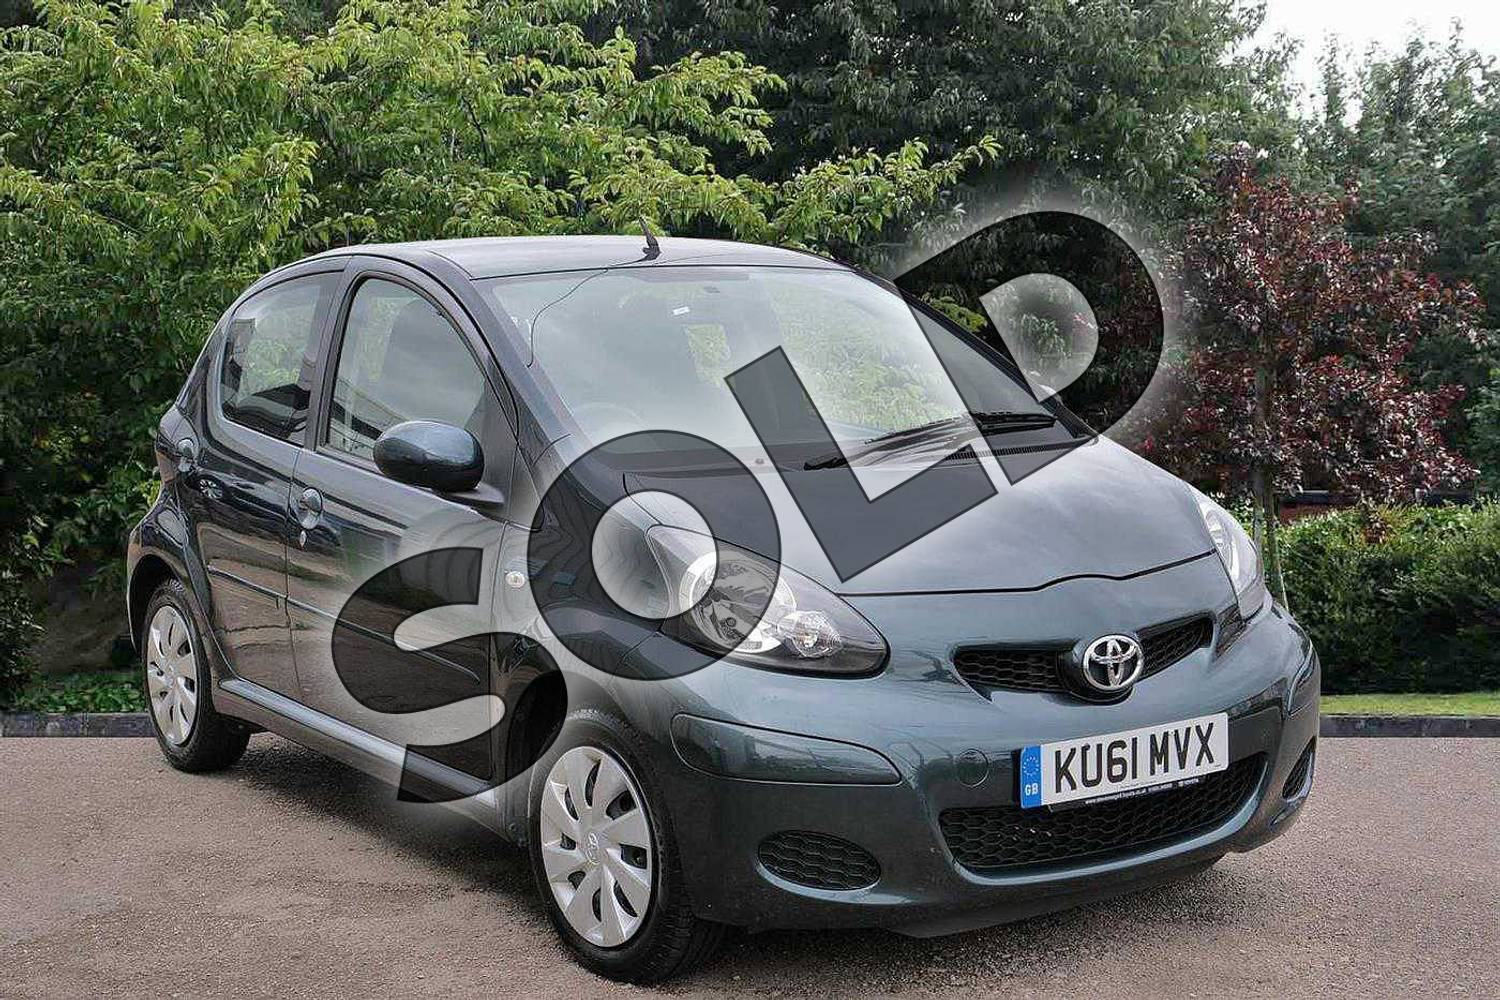 2011 Toyota AYGO Hatchback Special Edition Special Edition 1.0 VVT-i Ice 5dr in Green at Listers Toyota Stratford-upon-Avon